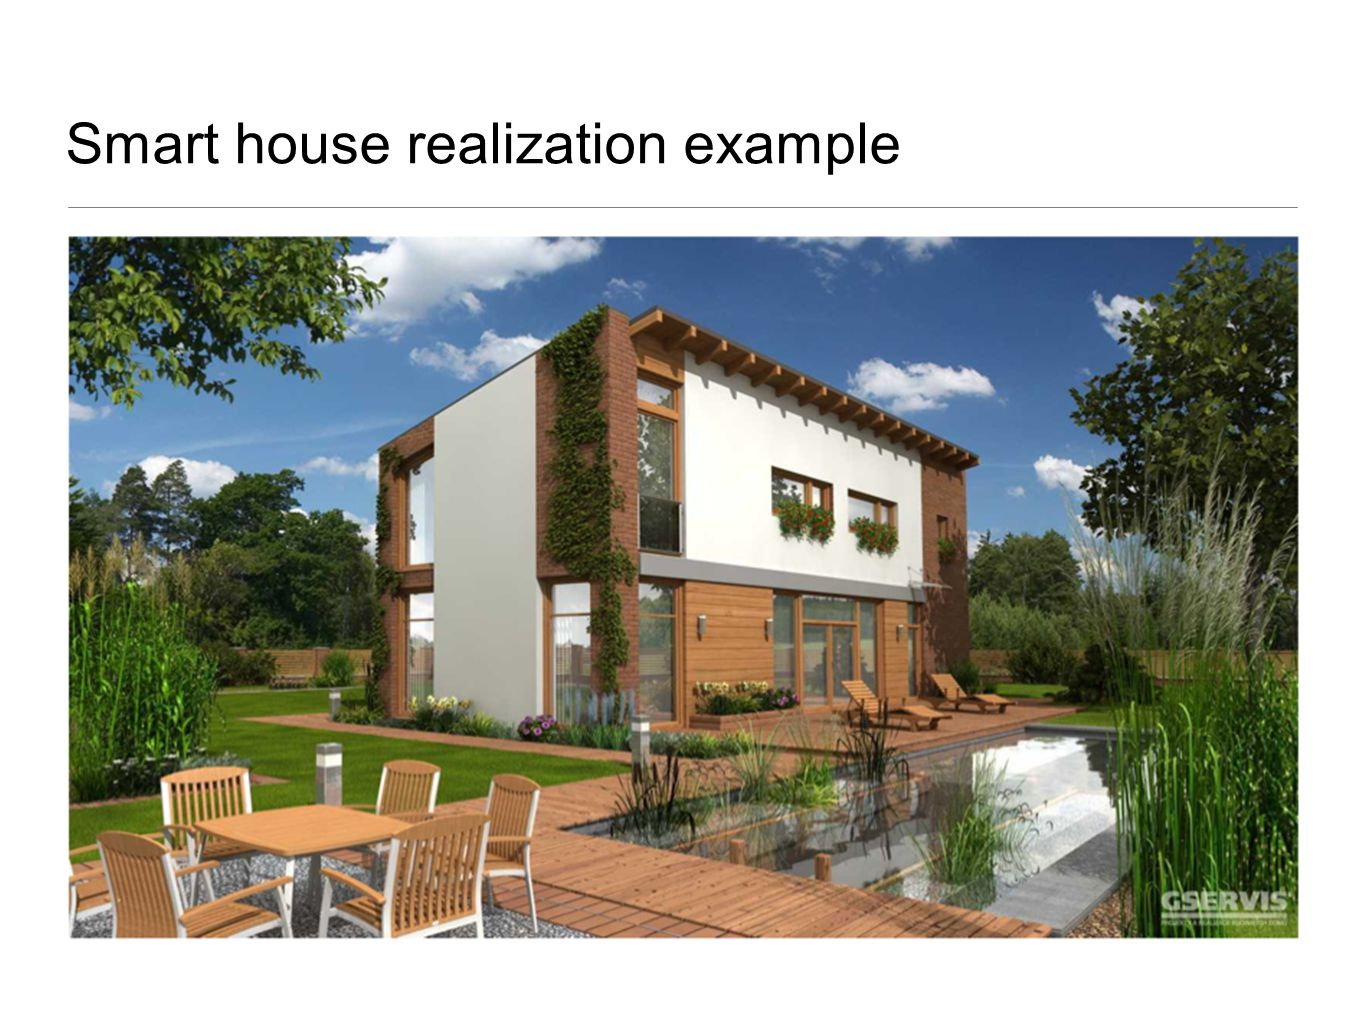 Smart house realization example